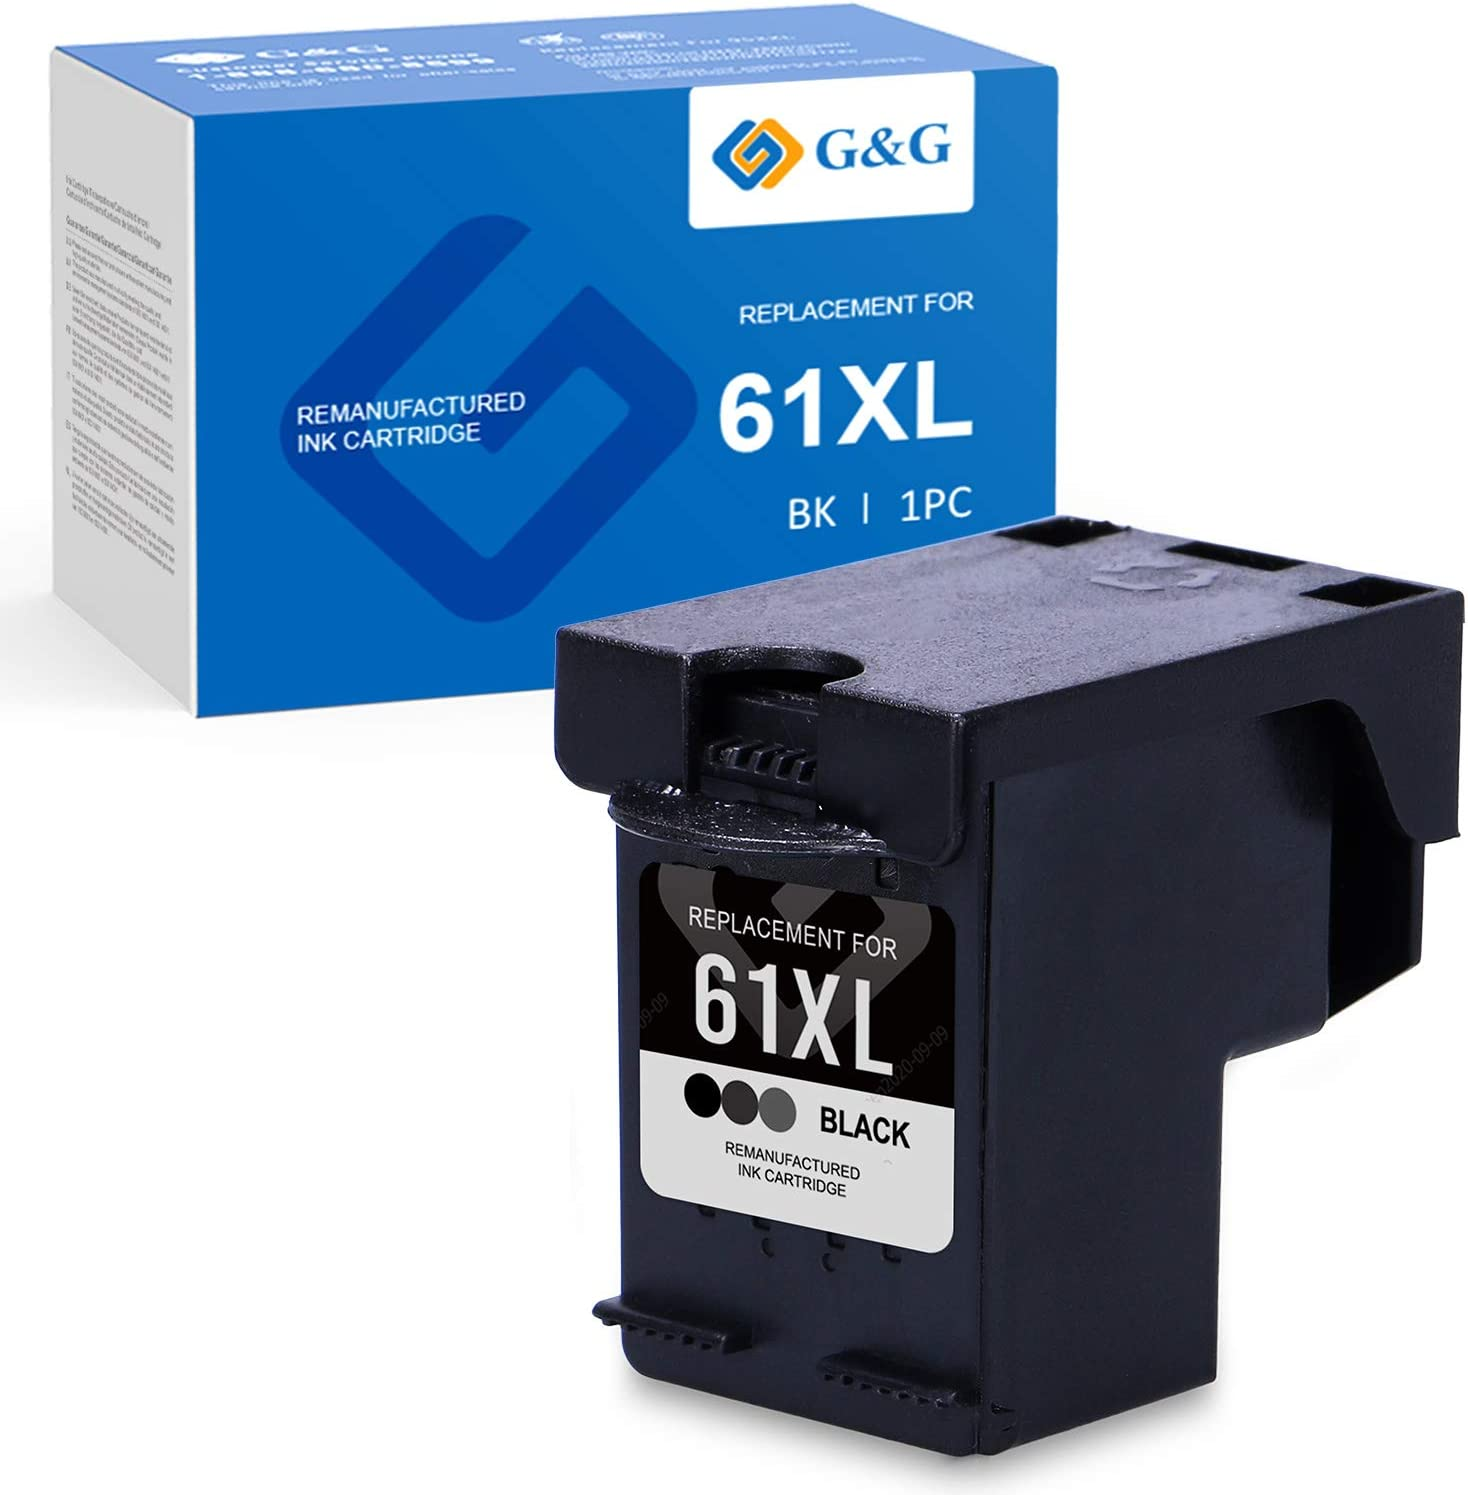 G&G Remanufactured Ink Cartridges Replacement for HP 61 61XL use with HP OfficeJet 4630 4500 4635 4632 2620 Envy 5530 5535 4502 4501 DeskJet 2540 3050 3510 1000 2050 1512 1510 (Black, 1-Pack)